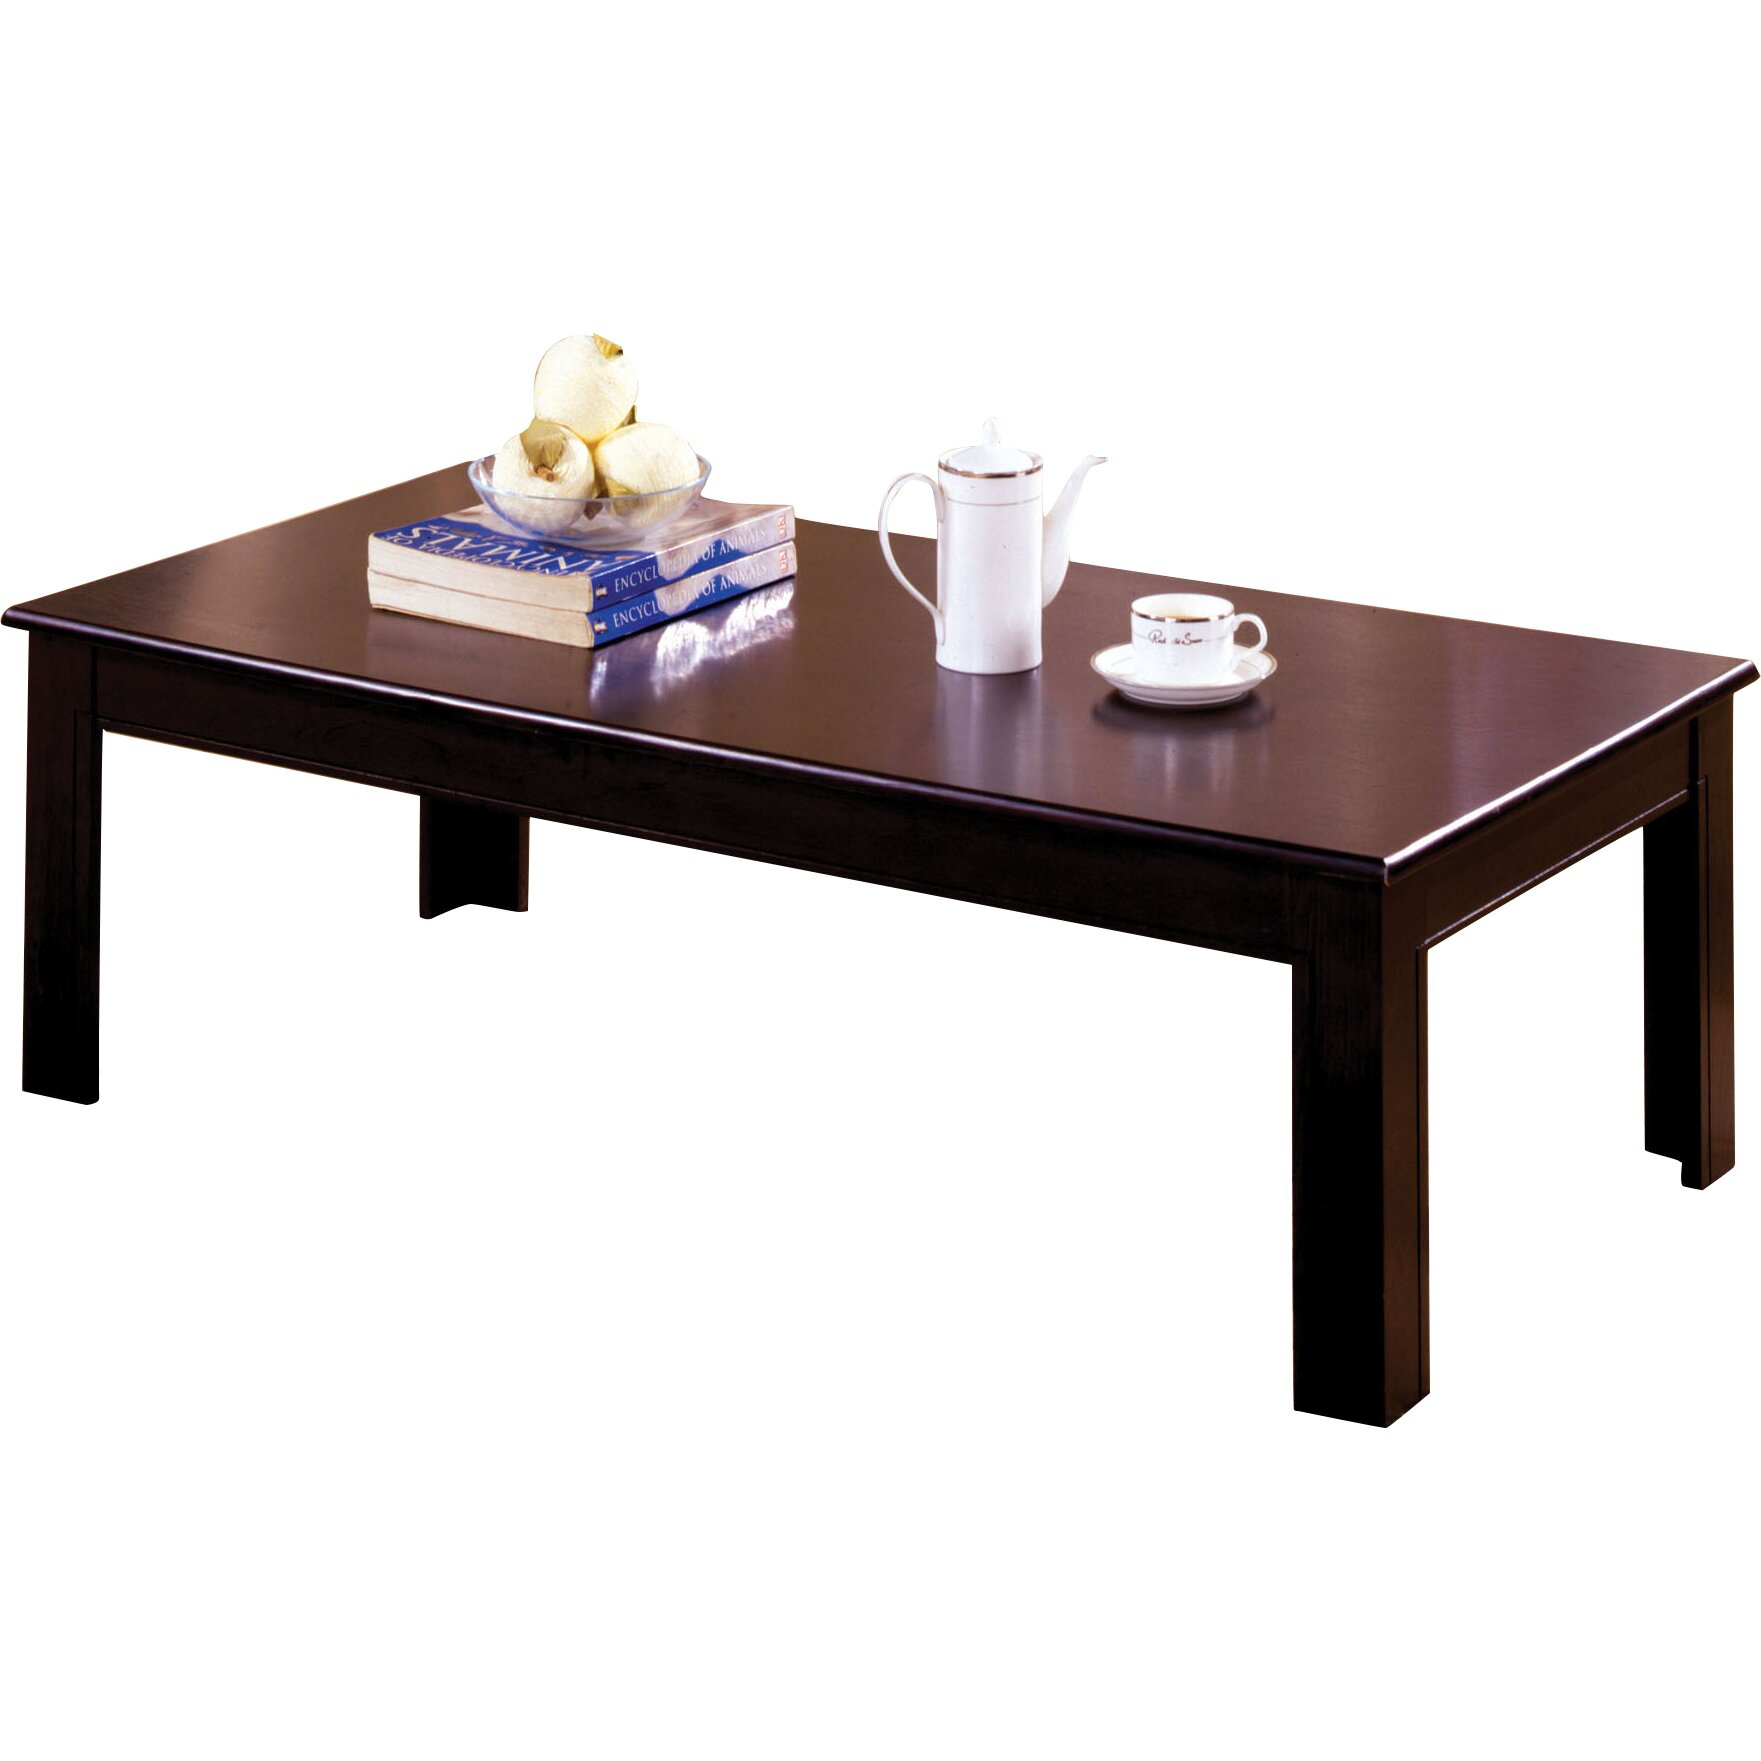 Hokku designs frixe 3 piece coffee table set reviews wayfair 3 set coffee tables